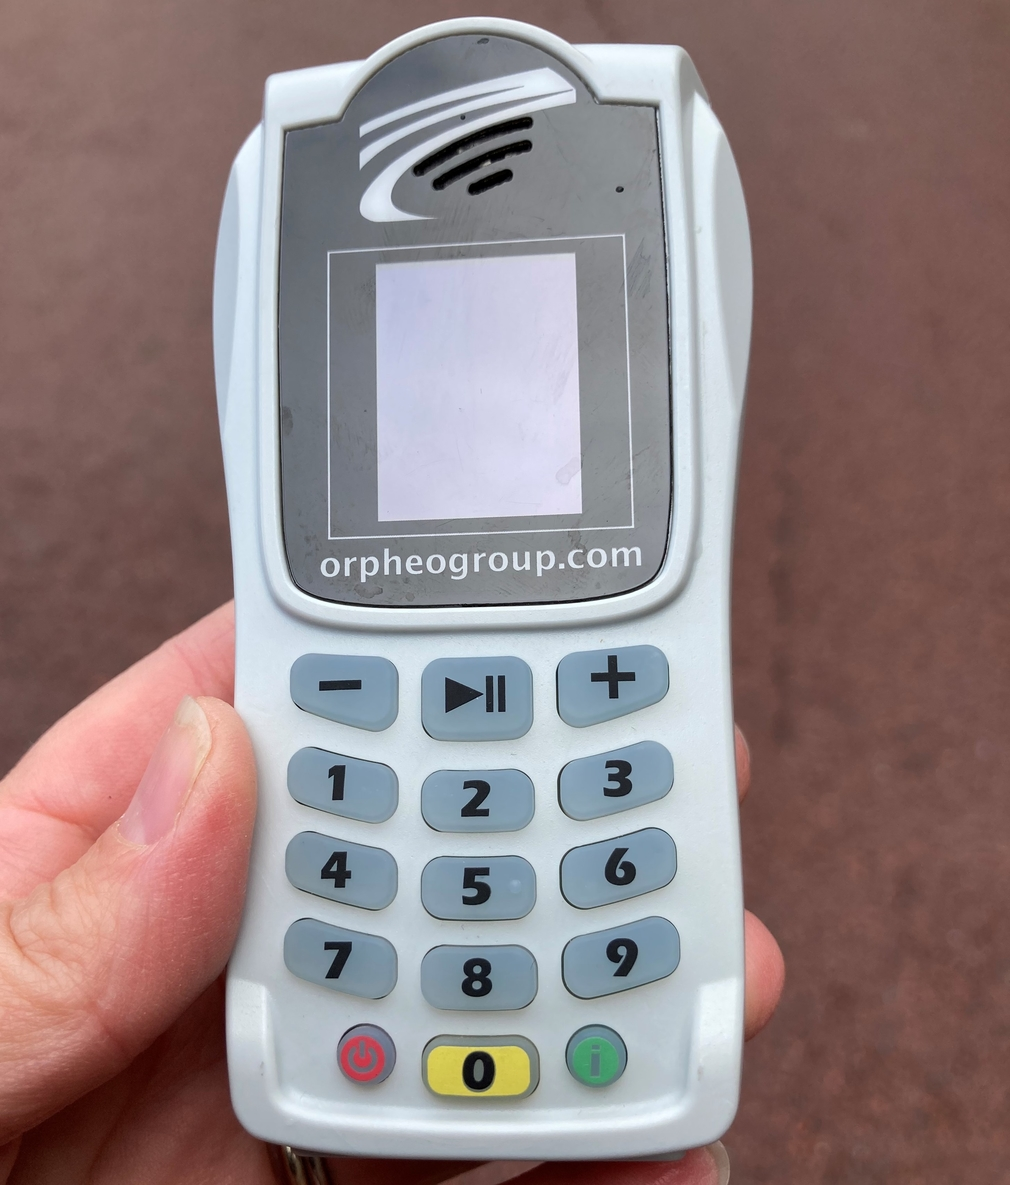 Small, hand-held audio player that looks like a mobile phone